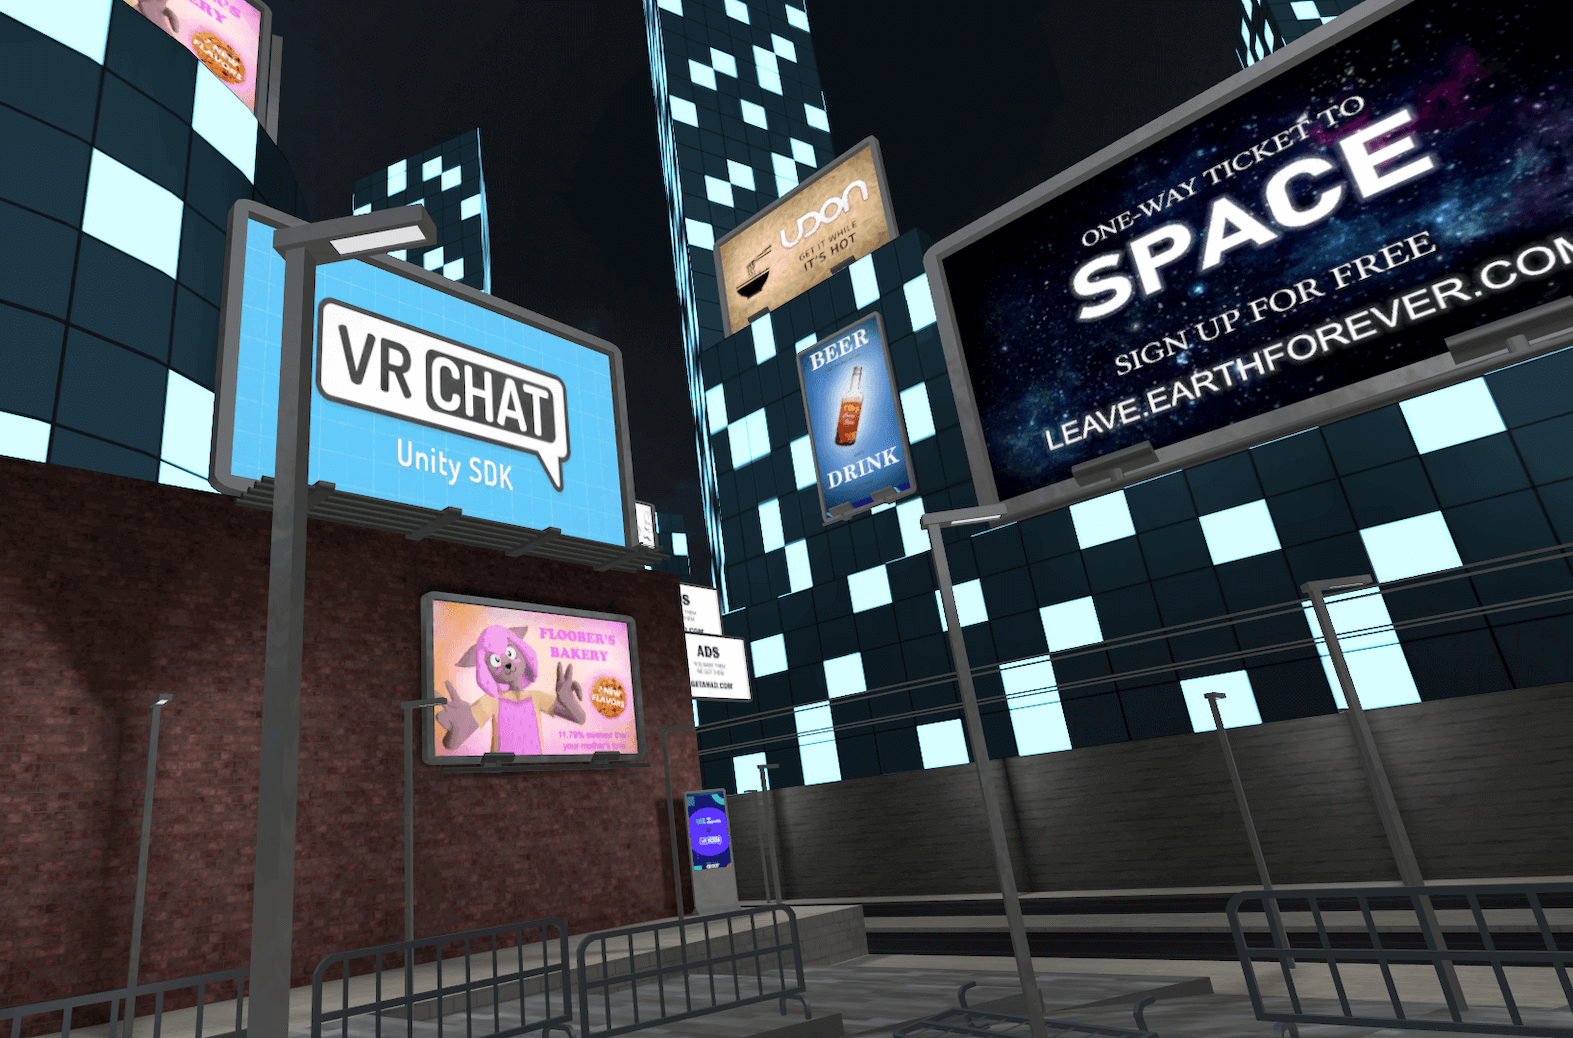 VRChat_1920x1080_2020-11-12_20-29-33.074 (small)